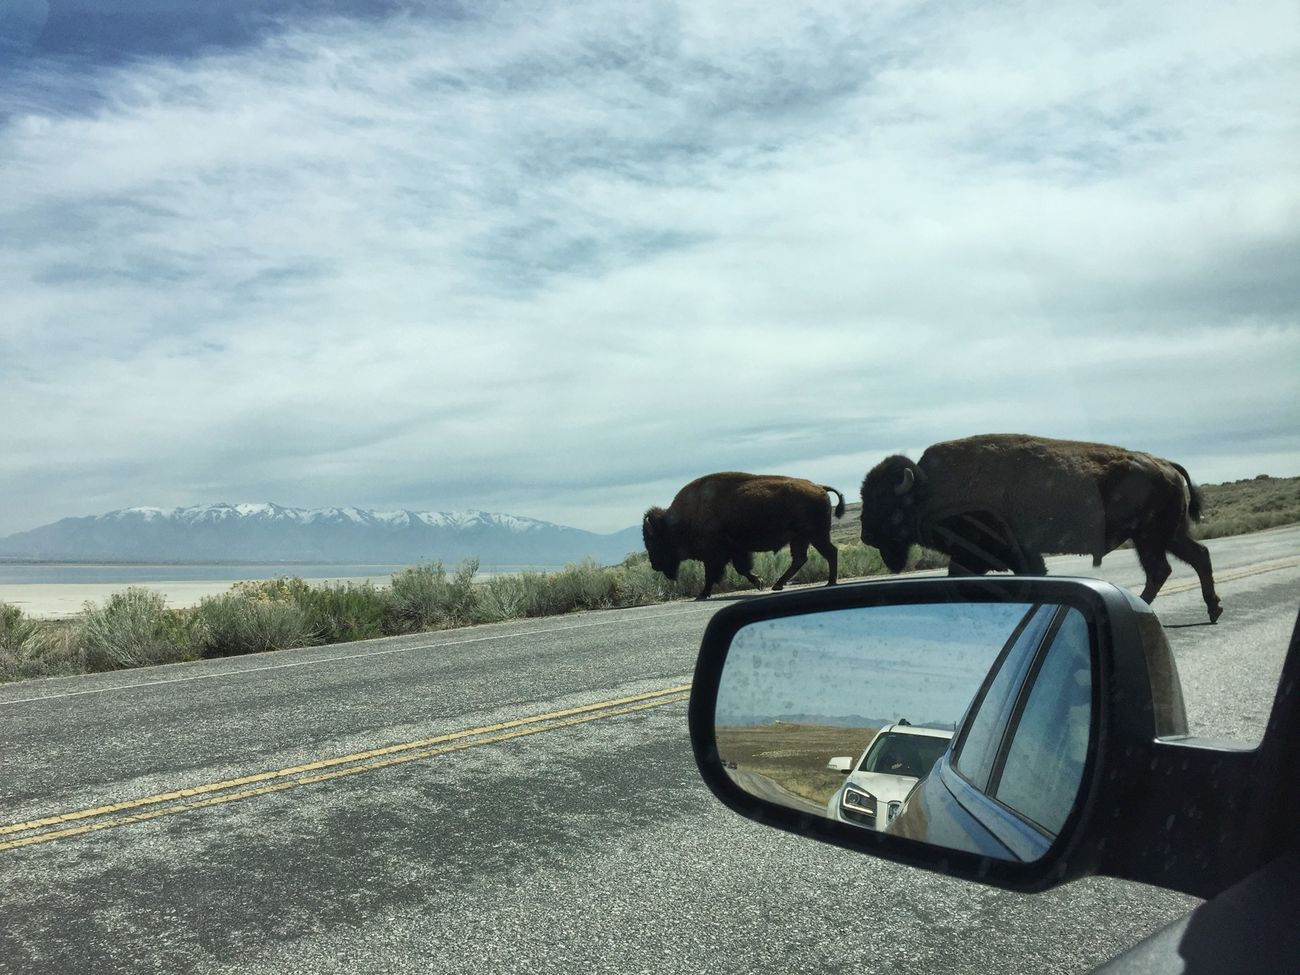 Road hazard in northern Utah ( they have the right of way ). EyeEm Nature Lover Wilderness Adventures Bison